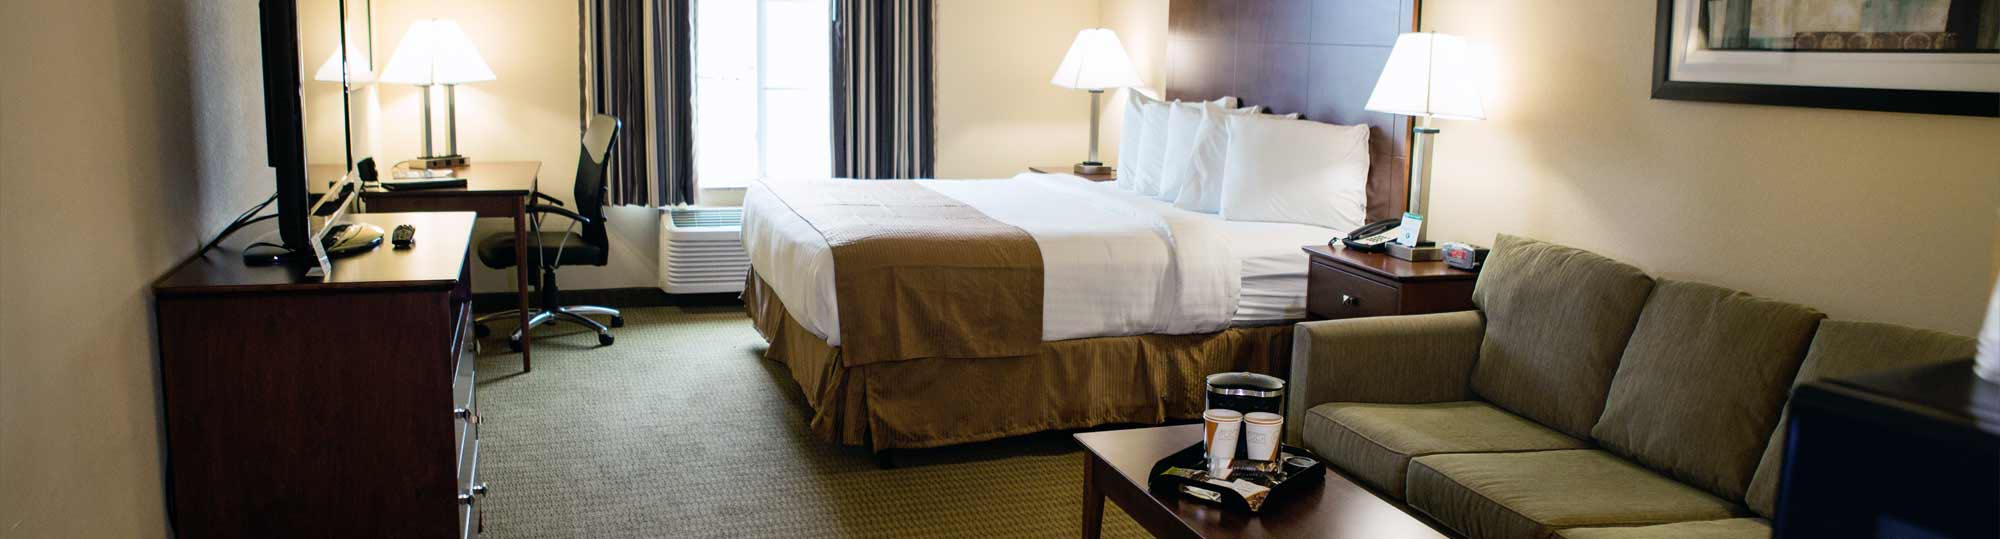 Cobblestone Hotel and Suites Knoxville